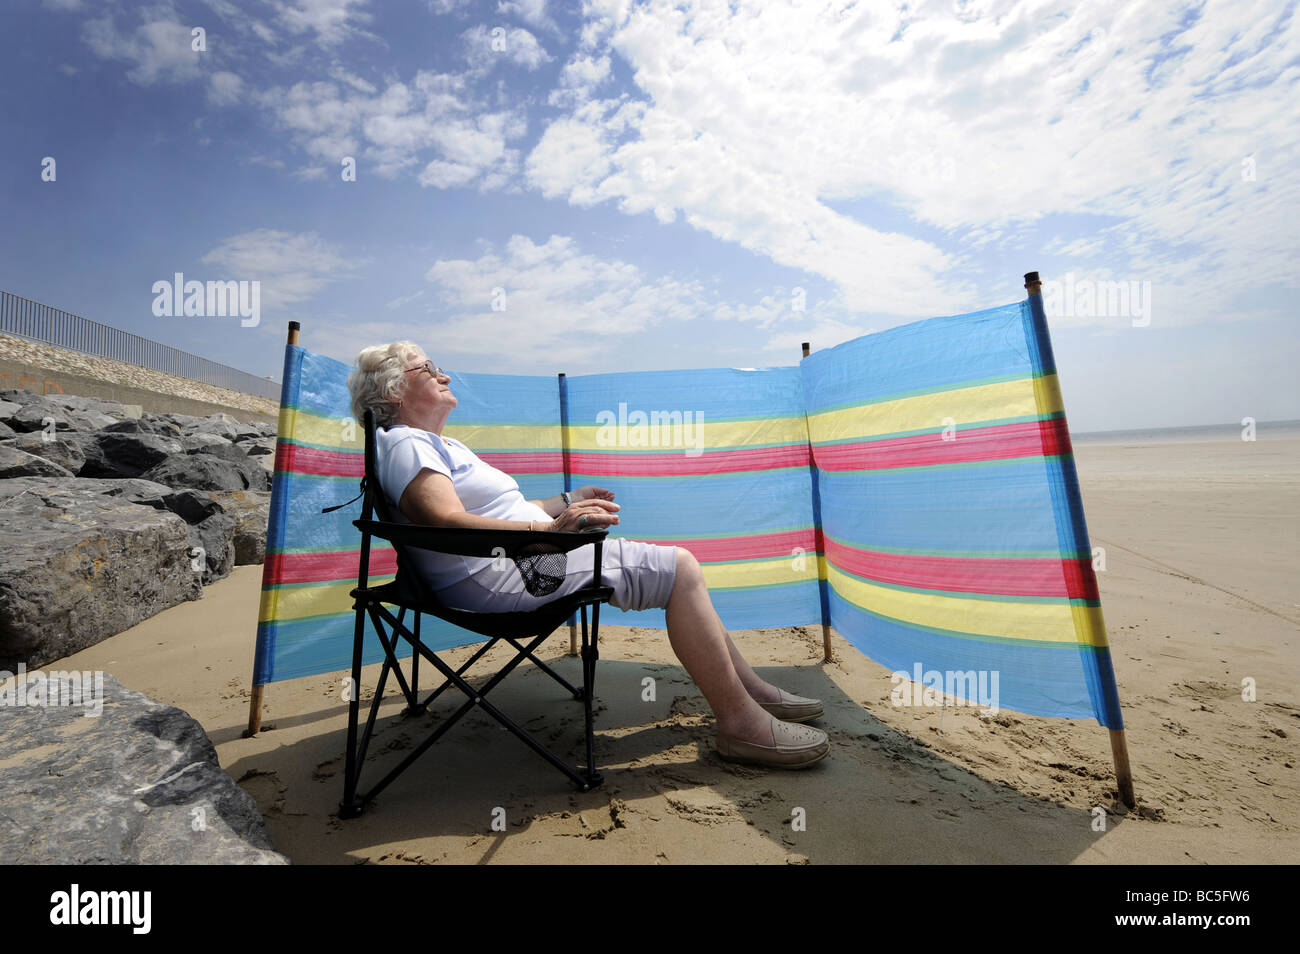 A  OLD AGE PENSIONER ENJOYS SUNBATHING ON A BRITISH BEACH WITH WINDBREAKER RE HOLIDAYS RETIREMENT OAPS PENSIONERS Foto de stock